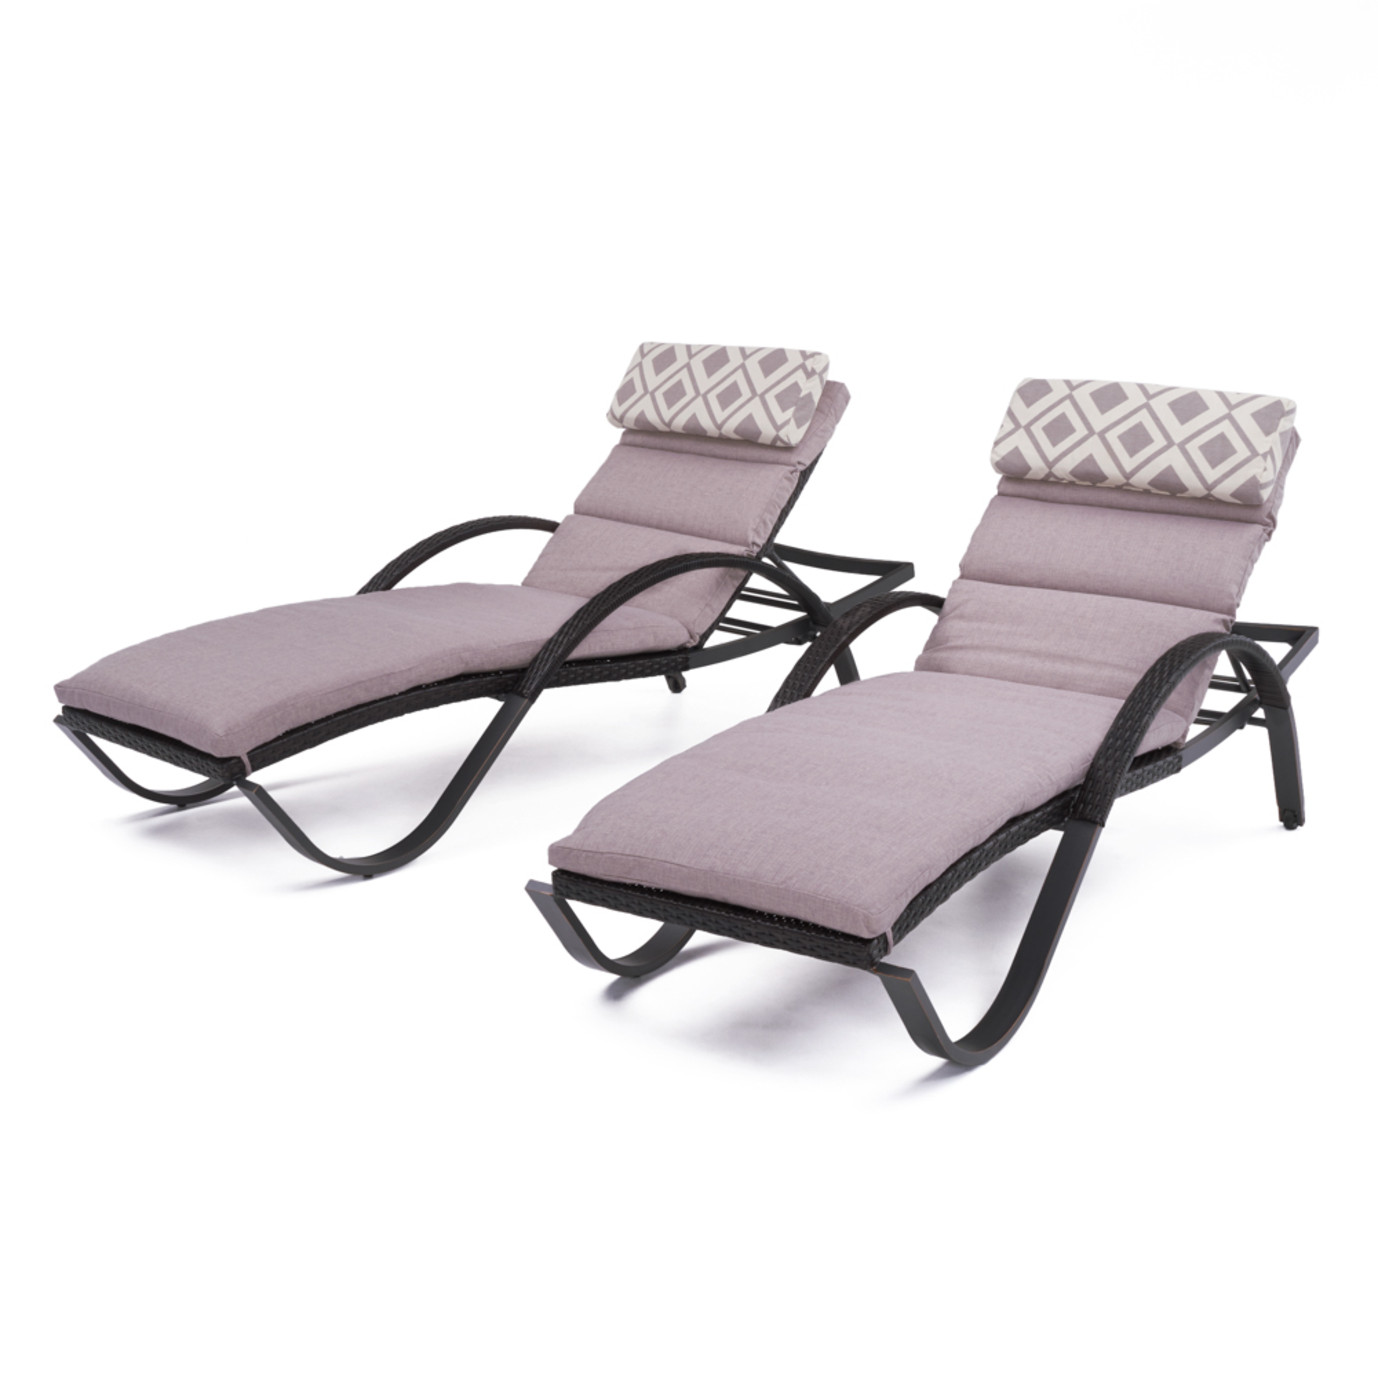 Deco™ 20 Piece Outdoor Estate Set - Wisteria Lavender